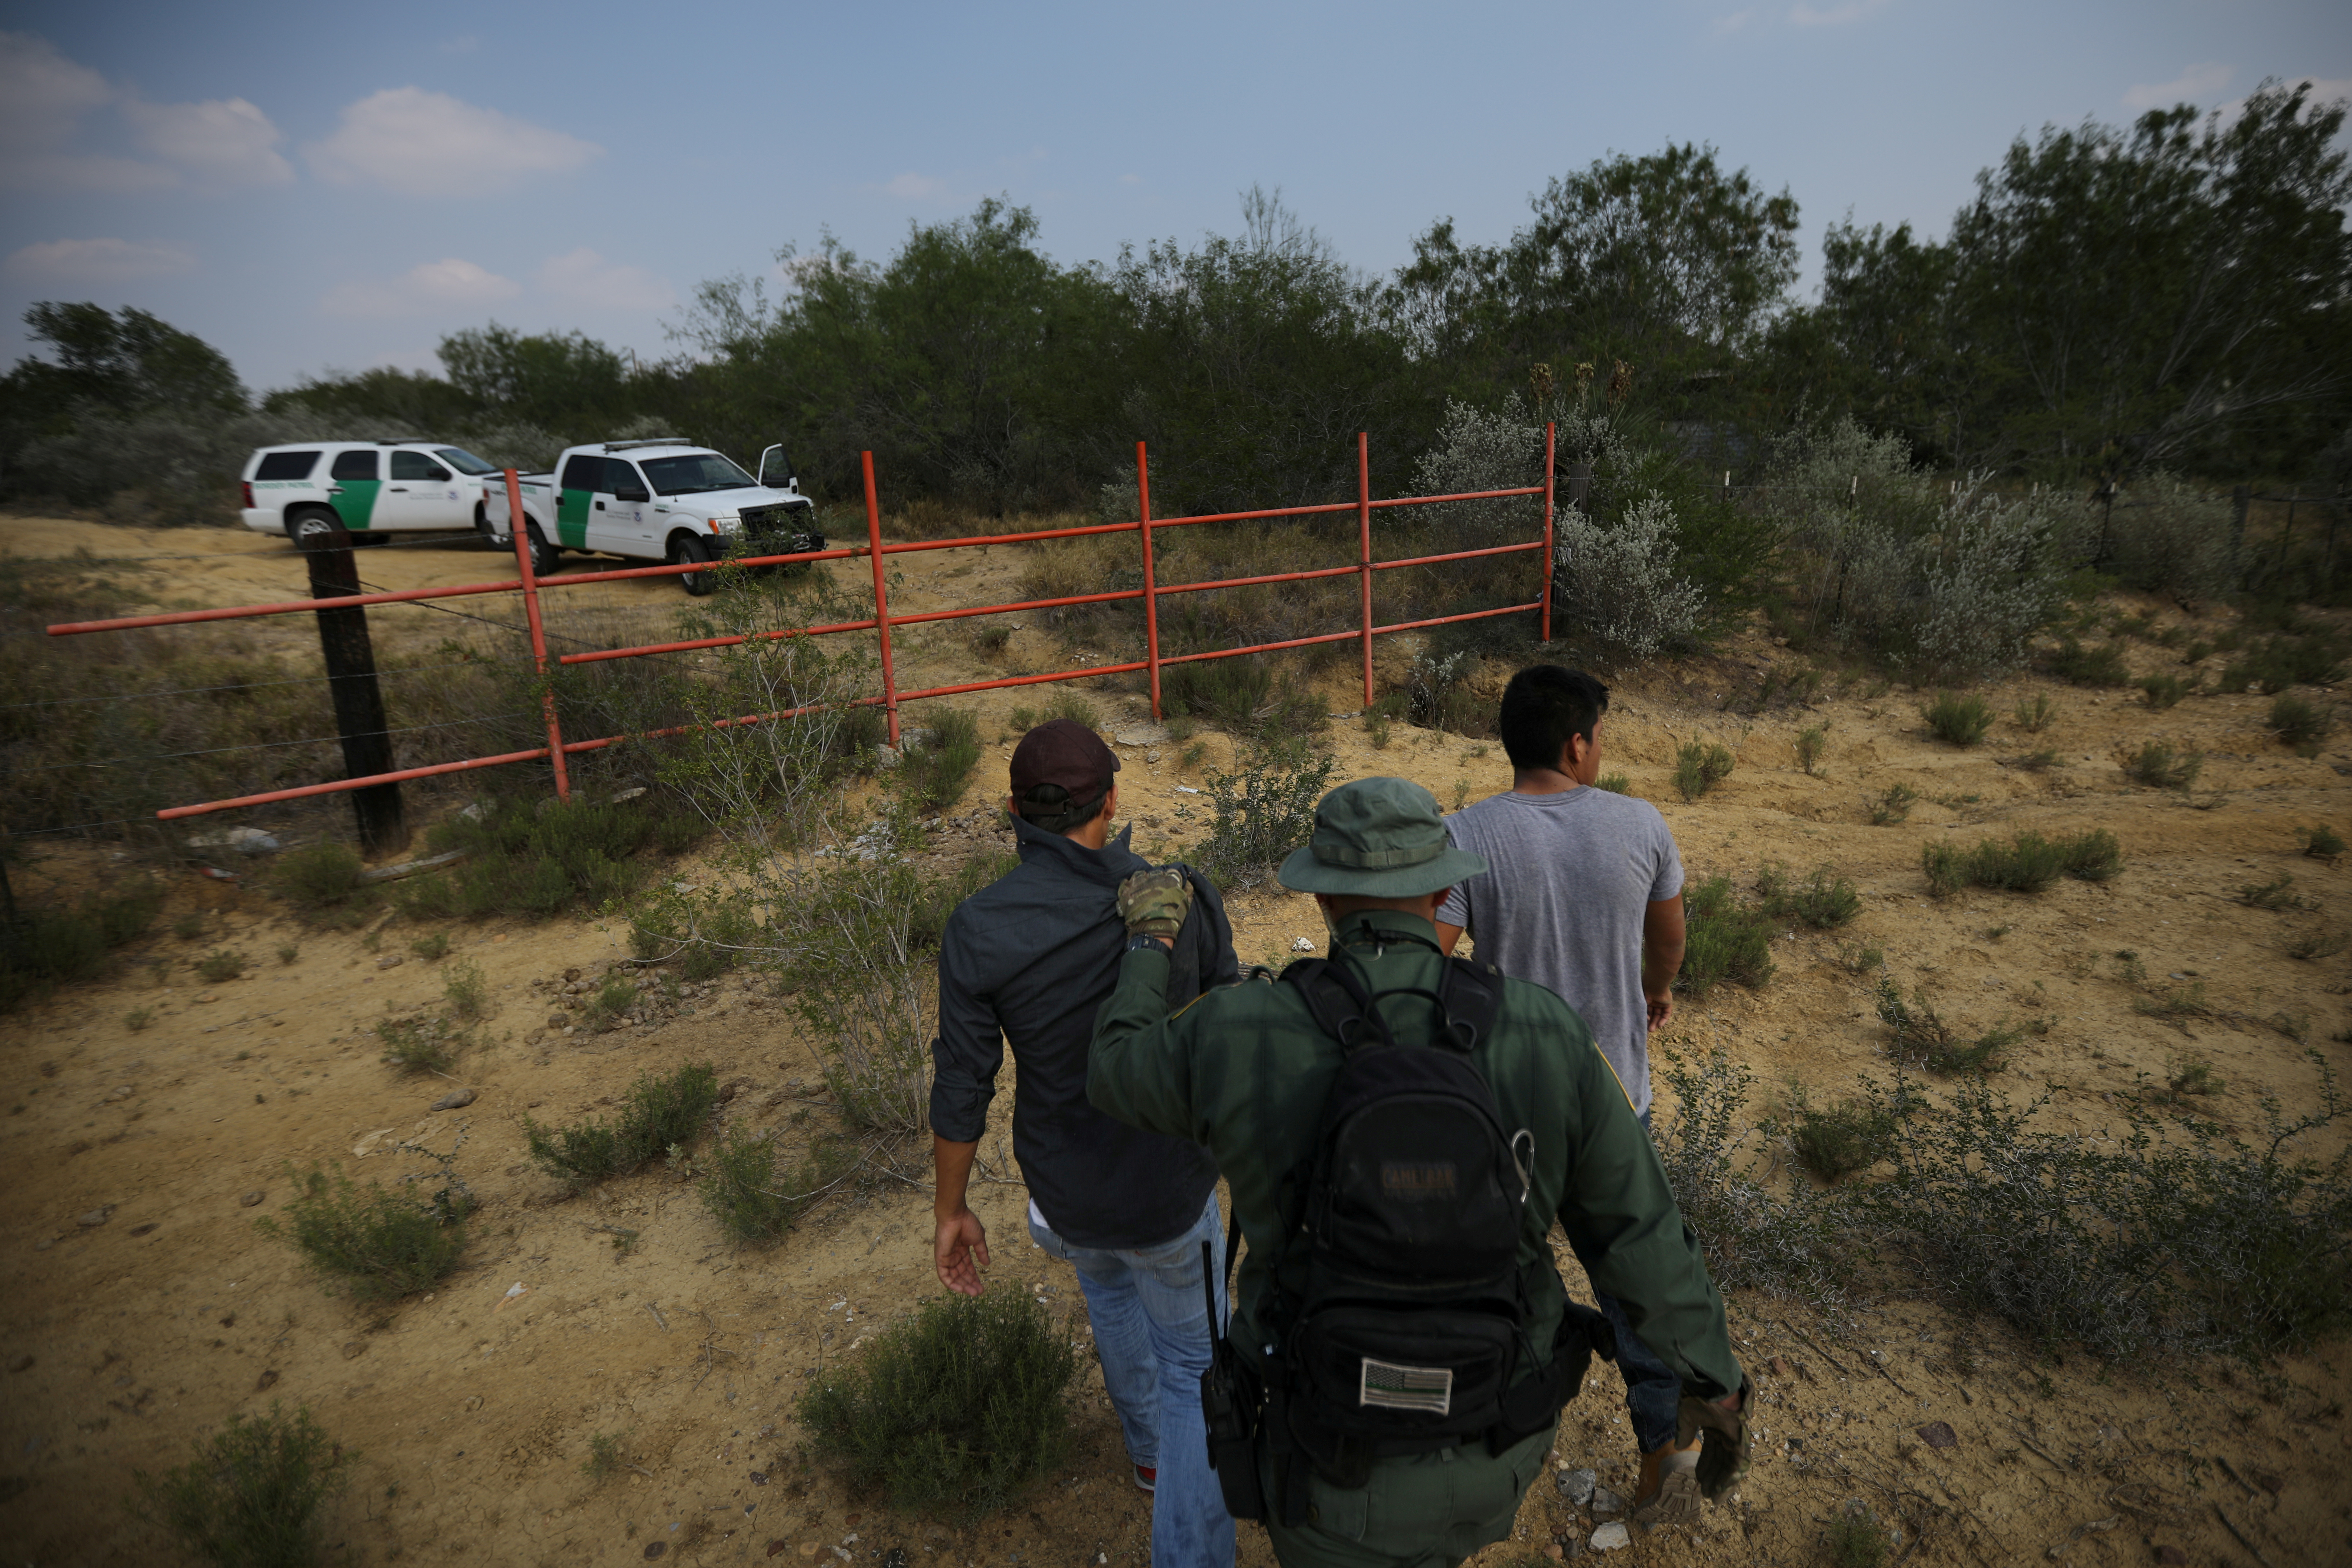 FILE - A US border patrol agent escorts men being detained after entering the United States by crossing the Rio Grande river from Mexico, in Roma, Texas, May 11, 2017.